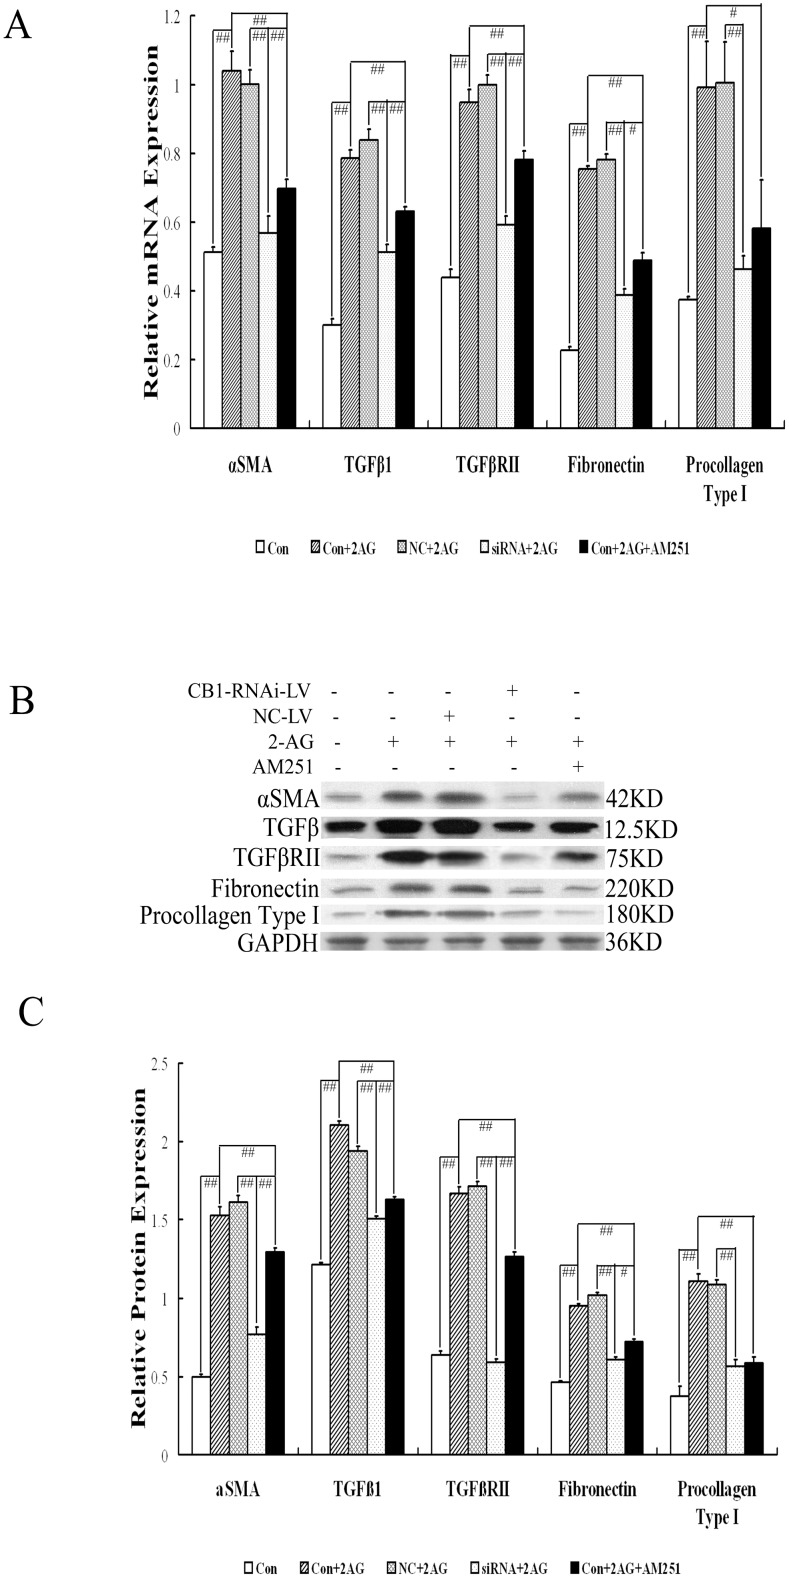 """Effect of CB1-RNAi-LV on activation and ECM production of primary hepatic stellate cells. ( A ) The statistical results of α-SMA, TGF-β1, TGF-β RII, fibronectin and procollagen type I mRNA expression in HSCs (named Con), HSCs with 2-AG (named Con+2AG), HSCs with NC-LV and 2-AG (named NC+2AG), HSCs with CB1-RNAi-LV and 2-AG (named siRNA+2AG), HSCs with 2-AG and AM251 (named Con+2AG+AM251) by RT-PCR analysis. Relative expression levels of mRNA were normalized against those of GAPDH mRNA. ( B ) shows representative graphs of α-SMA, TGF-β1, TGF-β RII, fibronectin and procollagen type I protein expression by Western blot analysis and ( C ) shows the statistical results. Results demonstrated that the mRNA and protein expressions of α-SMA, TGF-β1, TGF-β RII, fibronectin and procollagen type I in HSCs were all increased significantly after 2-AG stimulation, which were all decreased significantly when stimulated with AM251 or transfected with CB1-RNAi-LV. Furthermore, the mRNA expression of α-SMA, TGF-β1, TGF-β RII and fibronectin in HSCs stimulated by 2-AG and AM251 was higher significantly than that in HSCs stimulated by 2-AG and transfected with CB1-RNAi-LV. """"#"""" p"""